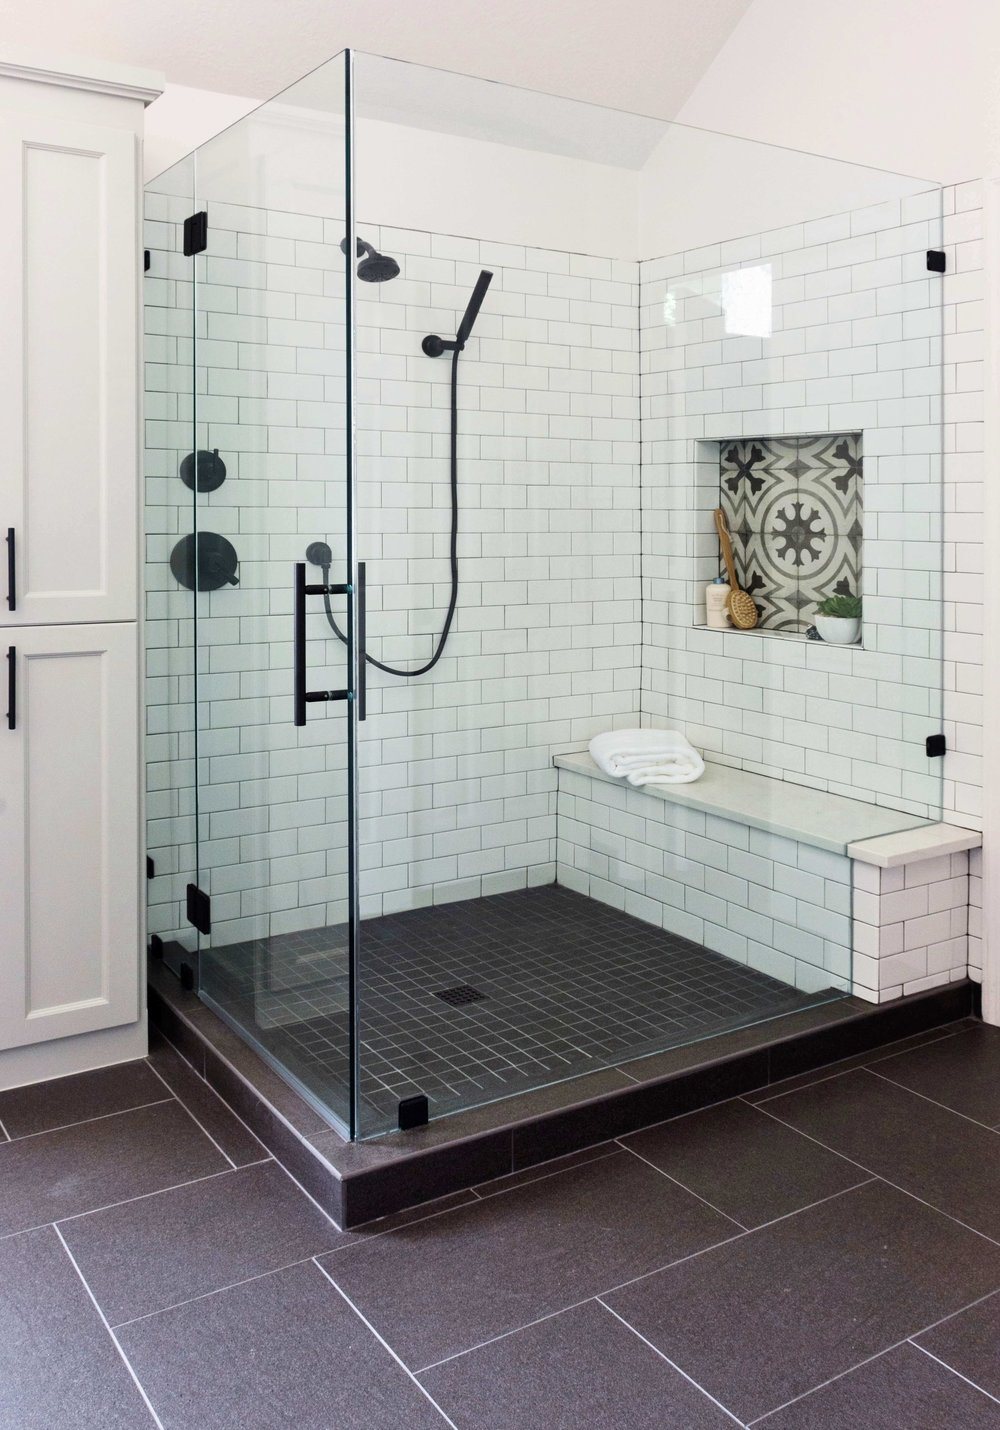 Master Bath Shower Remodel by Carla Aston.jpg